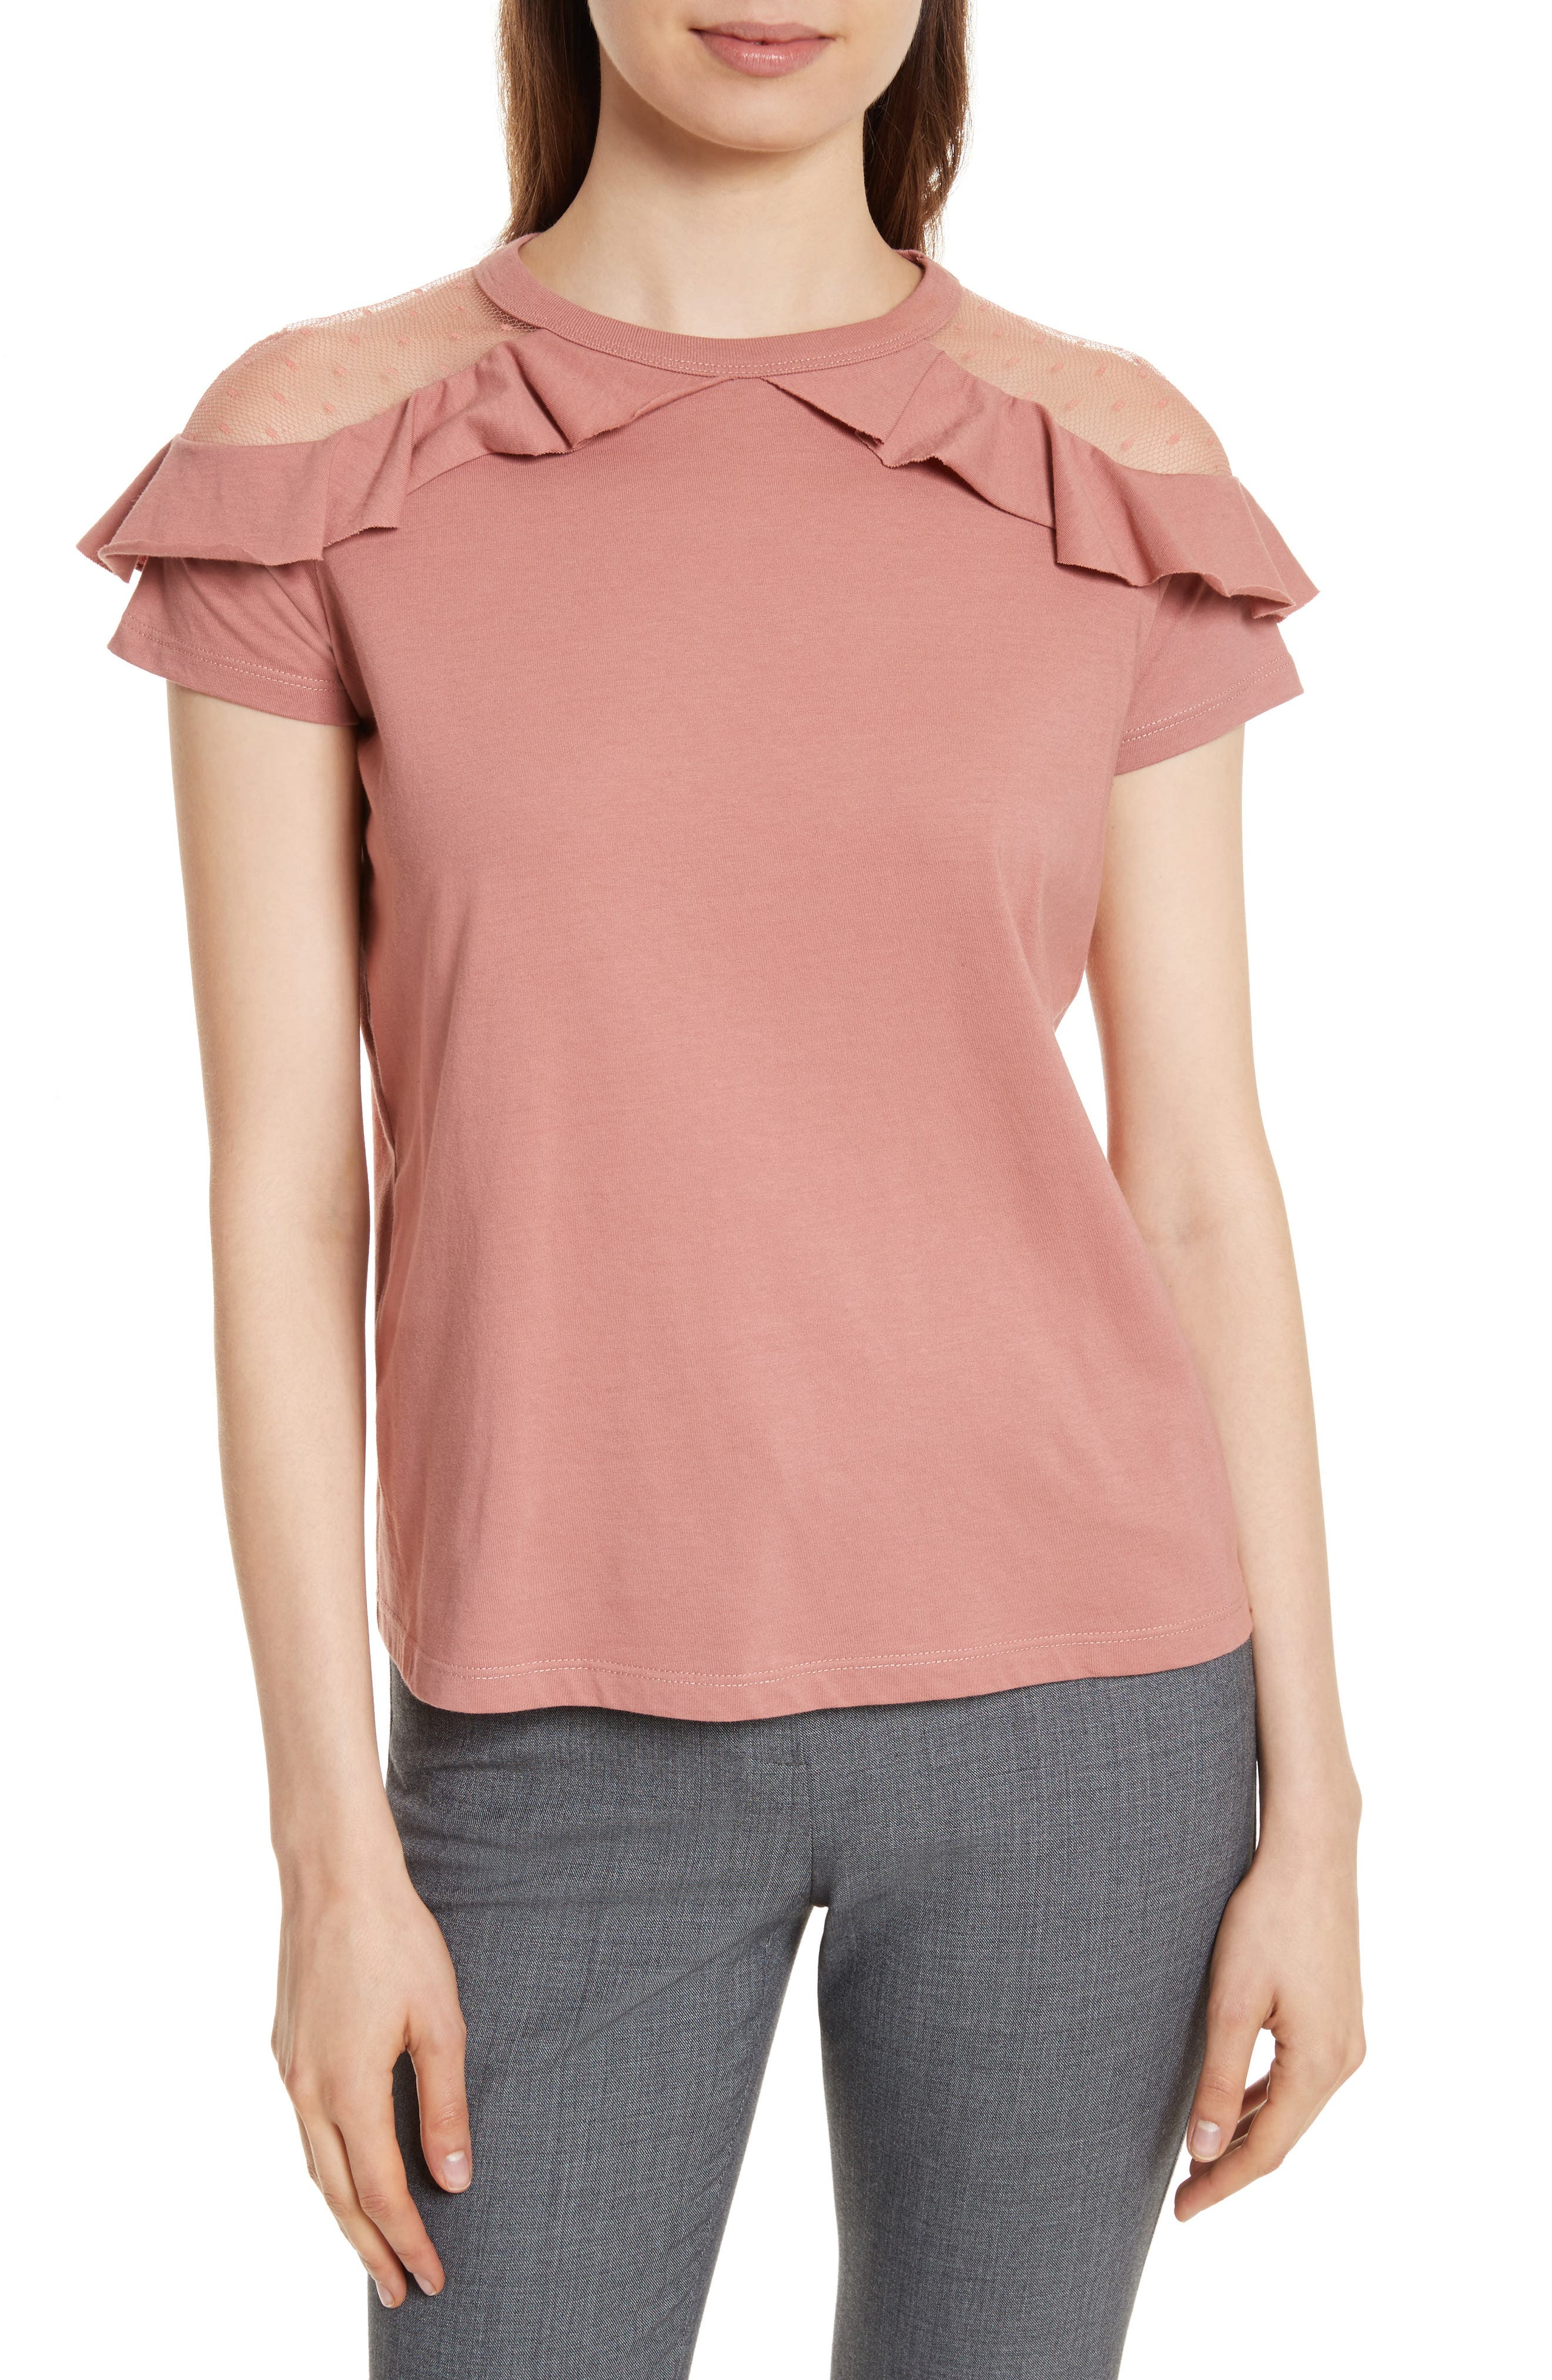 Main Image - RED Valentino Point d'Esprit & Jersey Top